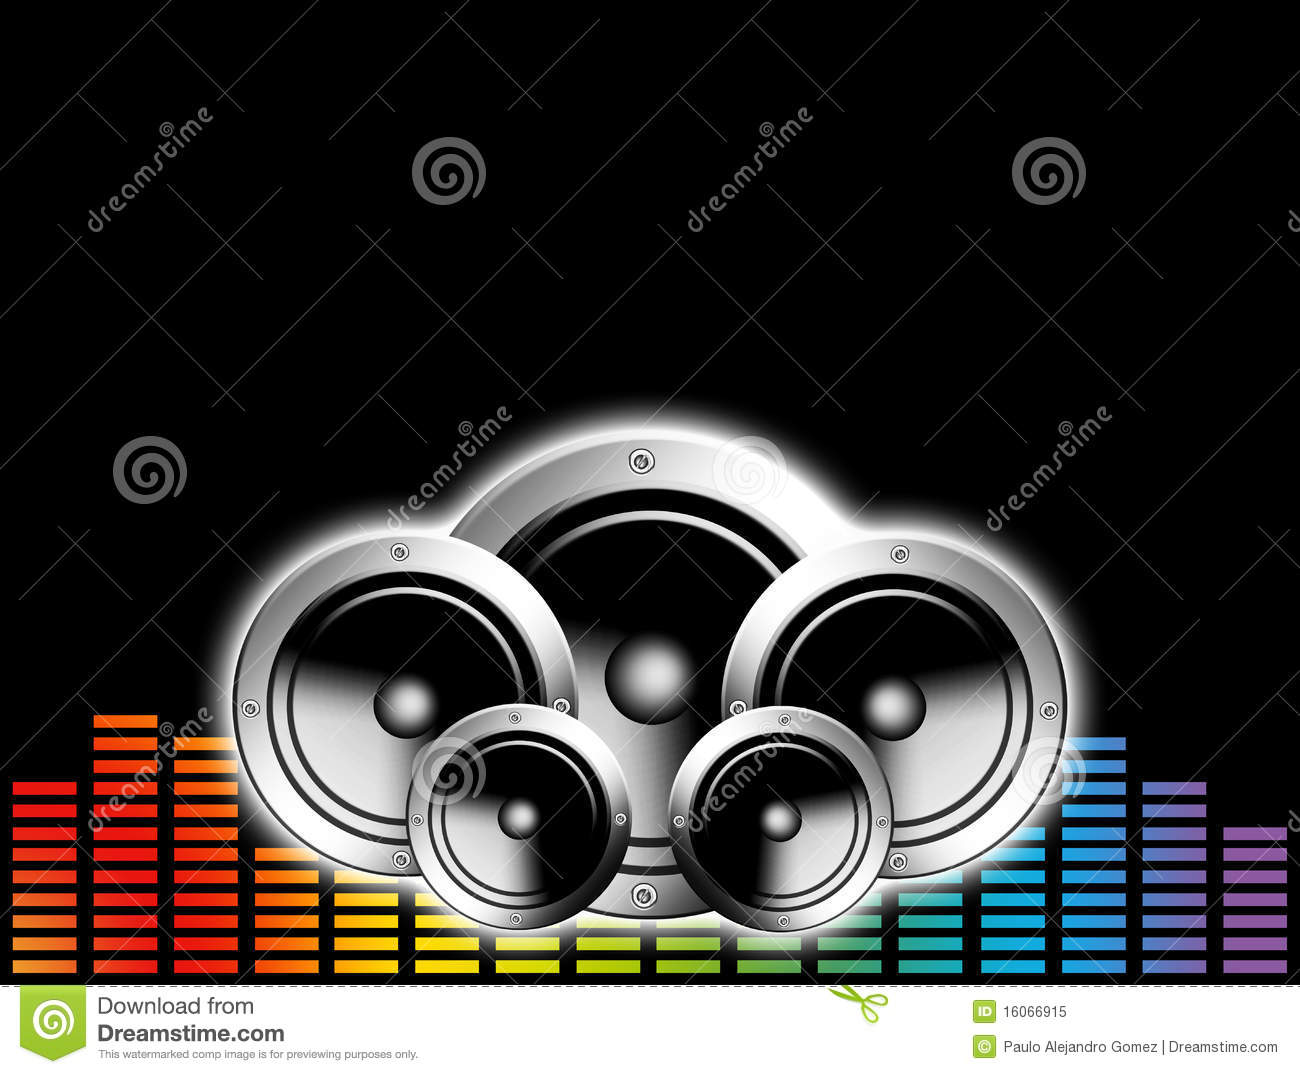 techno music background stock illustration  image of block